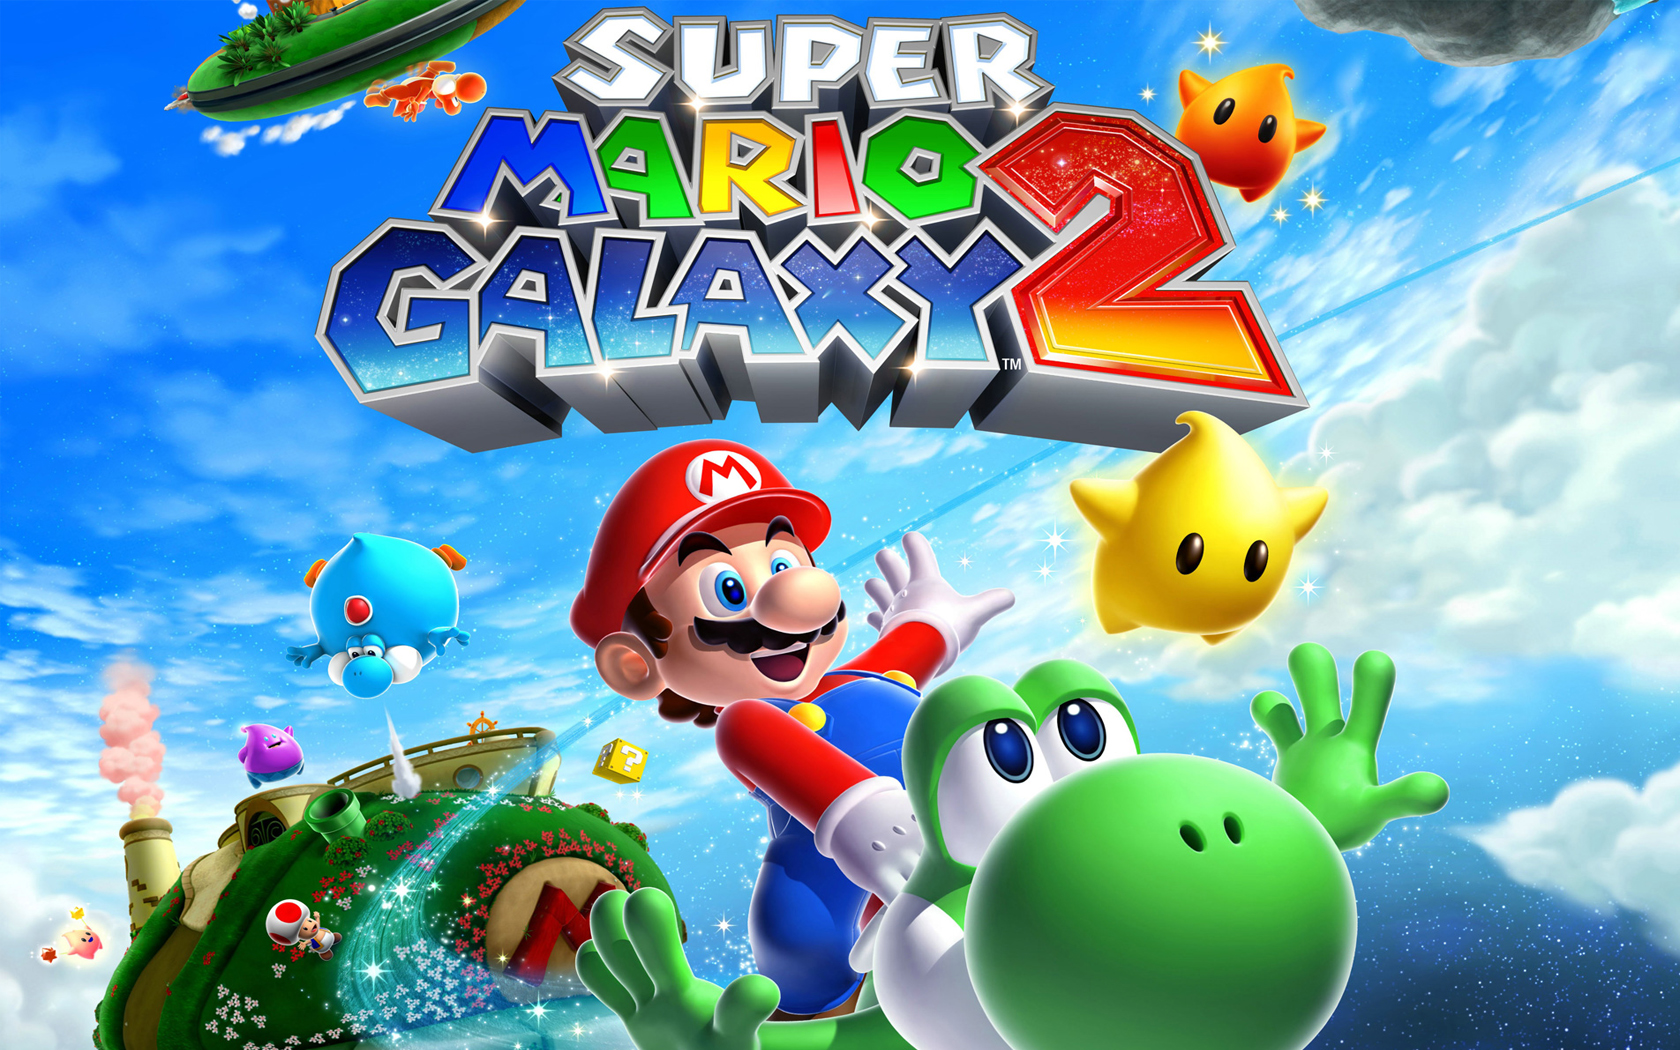 Super Mario Galaxy 2 Walkthrough (Nintendo Wii)